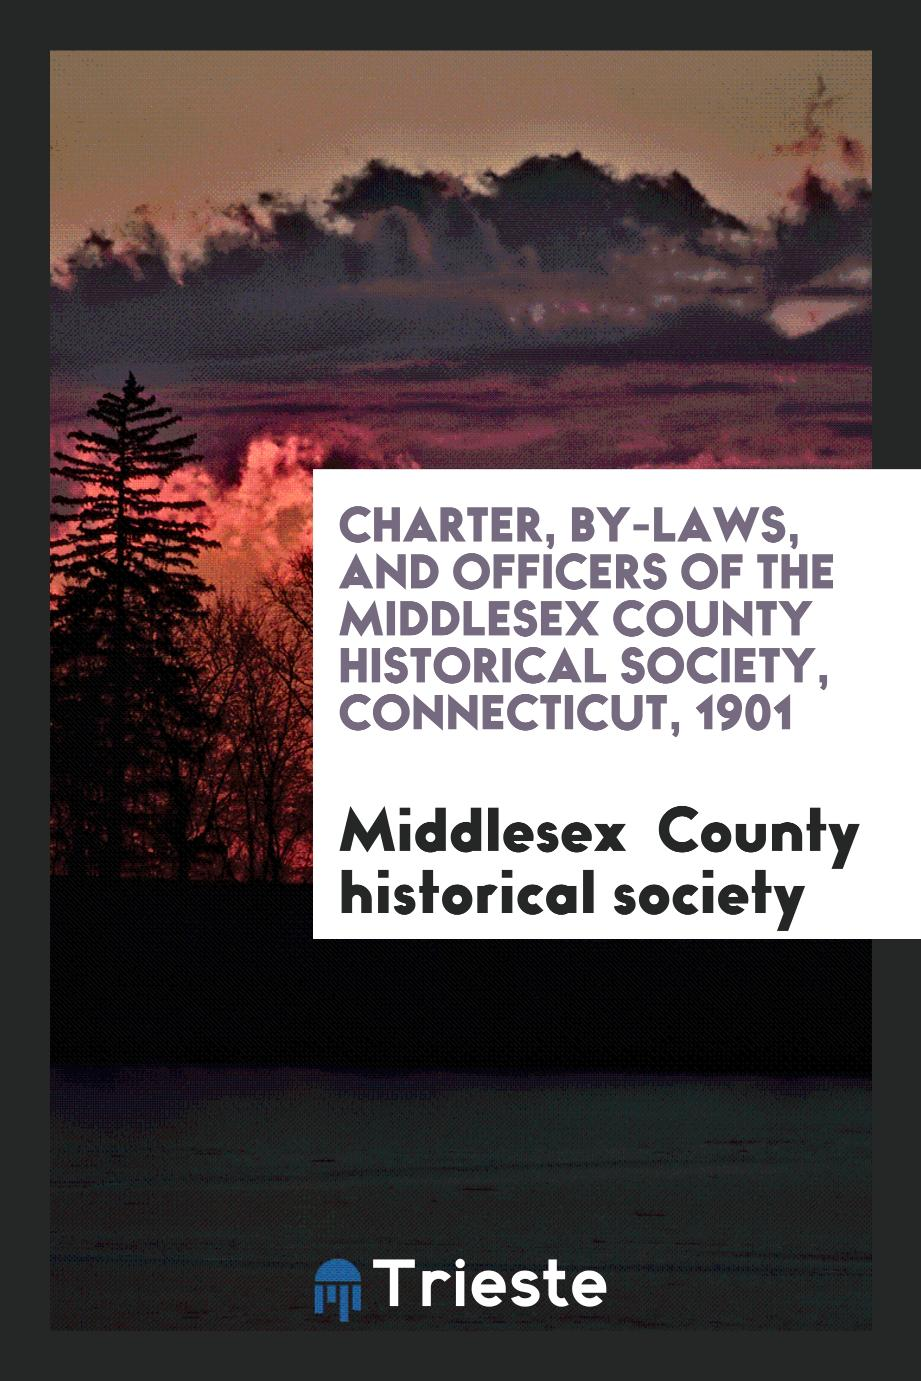 Charter, by-laws, and officers of the Middlesex county historical society, Connecticut, 1901